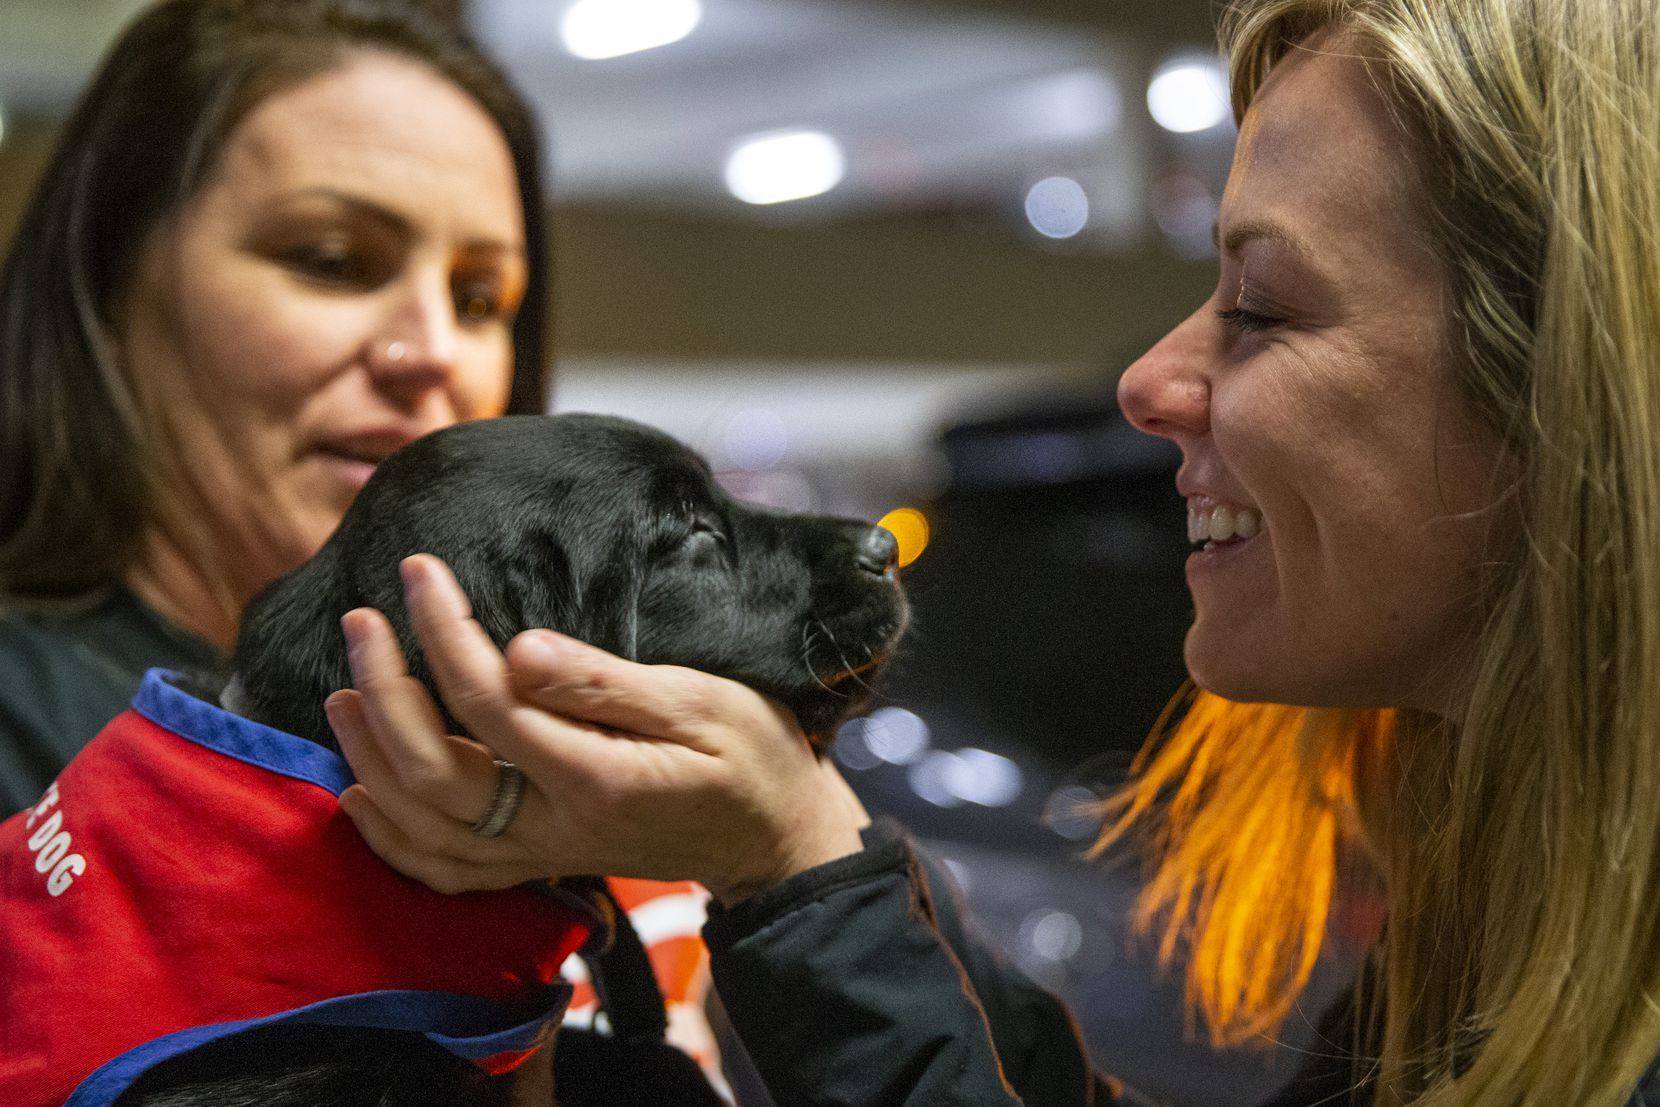 Caroline Clayton (right) says goodbye to 8-week-old Pine at DFW International Airport. The puppy, now known as Chopper, joined two litters of puppies for training at Patriot Paws Service Dogs.